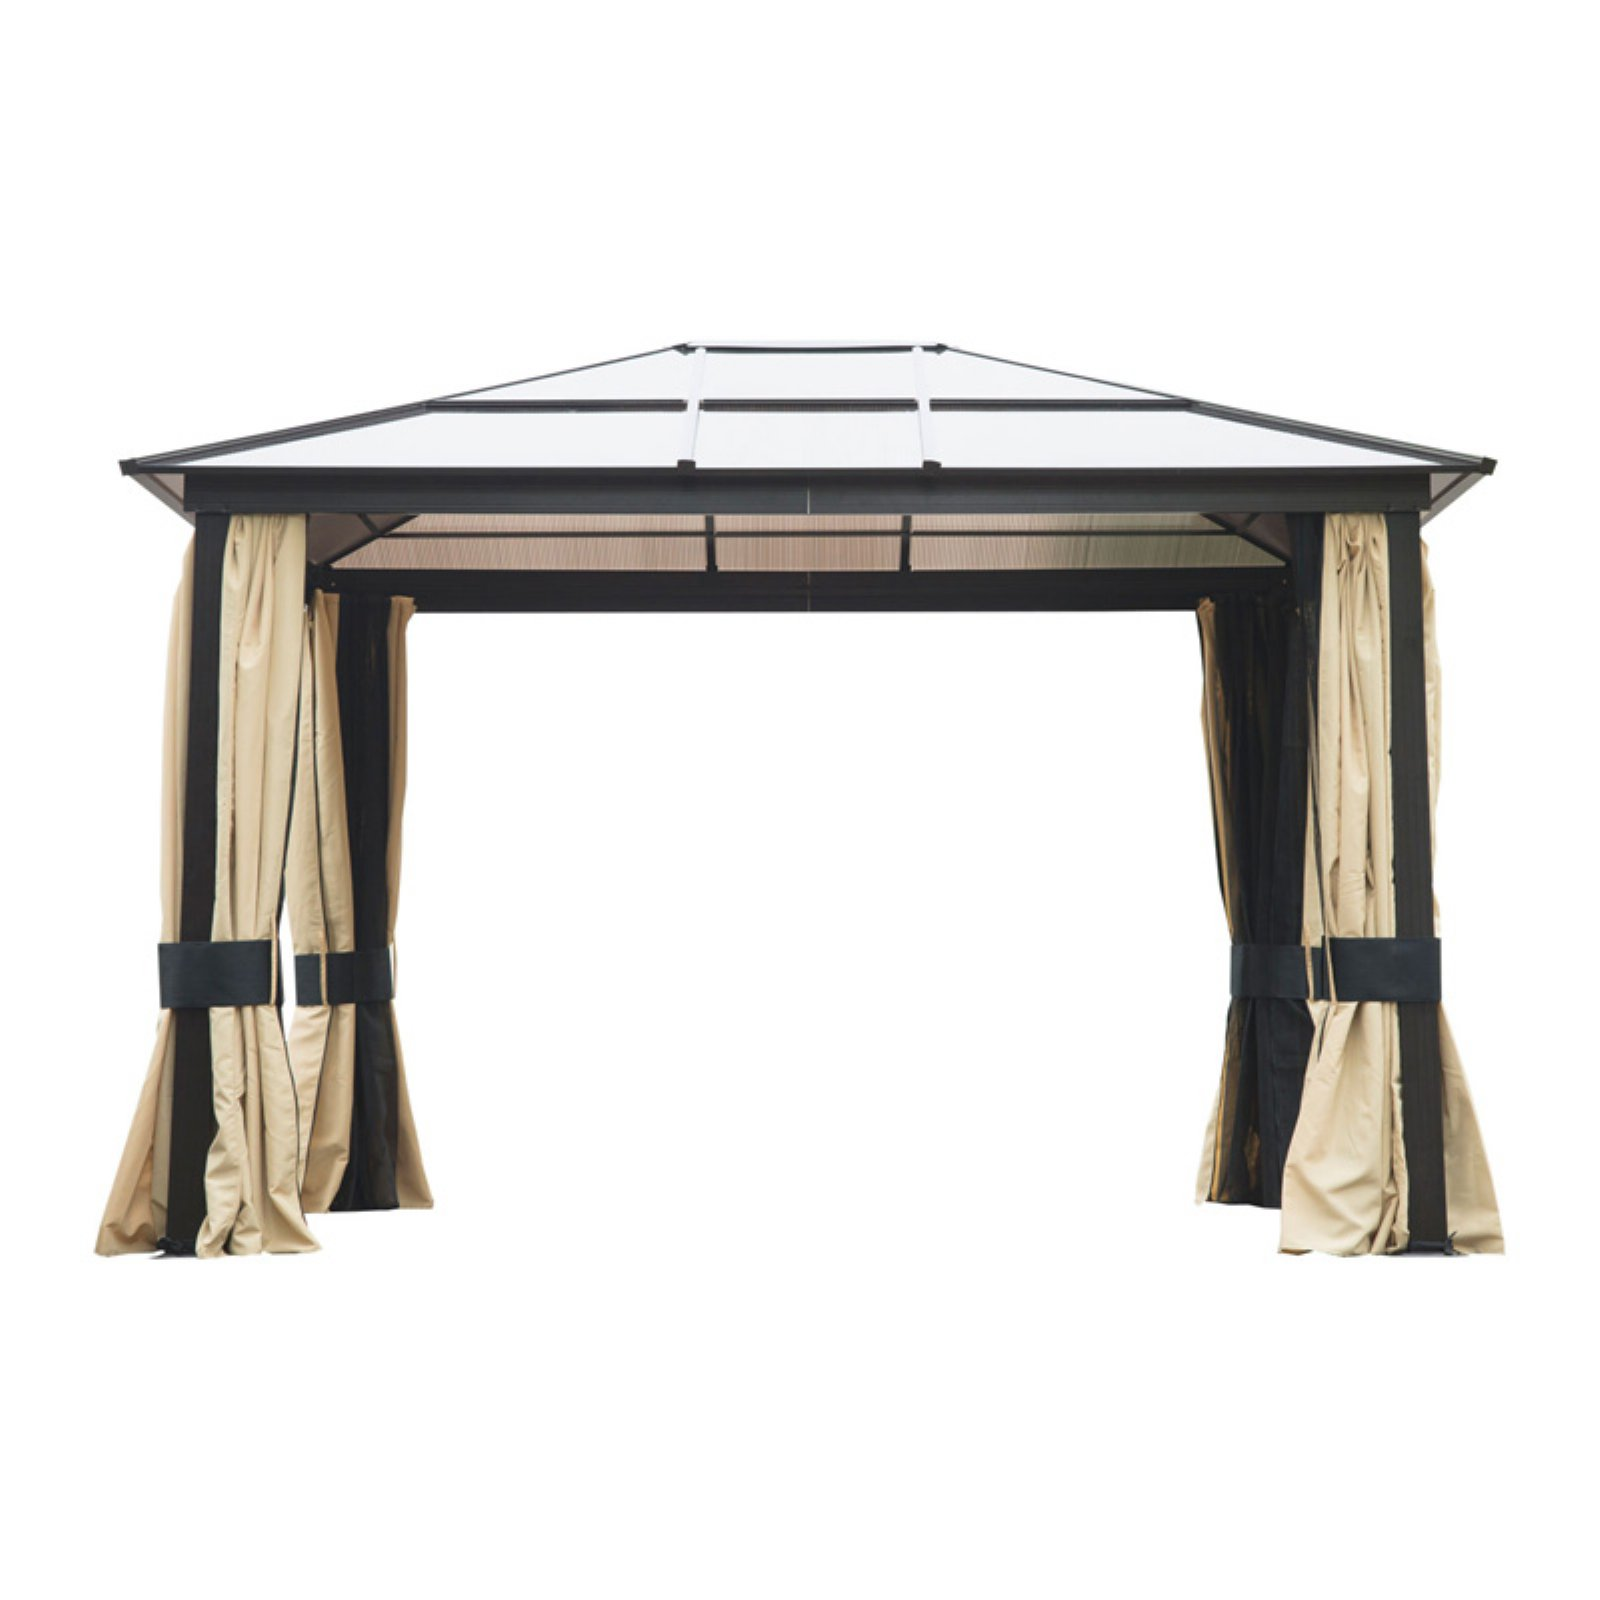 Outsunny 12 x 10 ft. Patio Gazebo Canopy with Mesh and Curtains